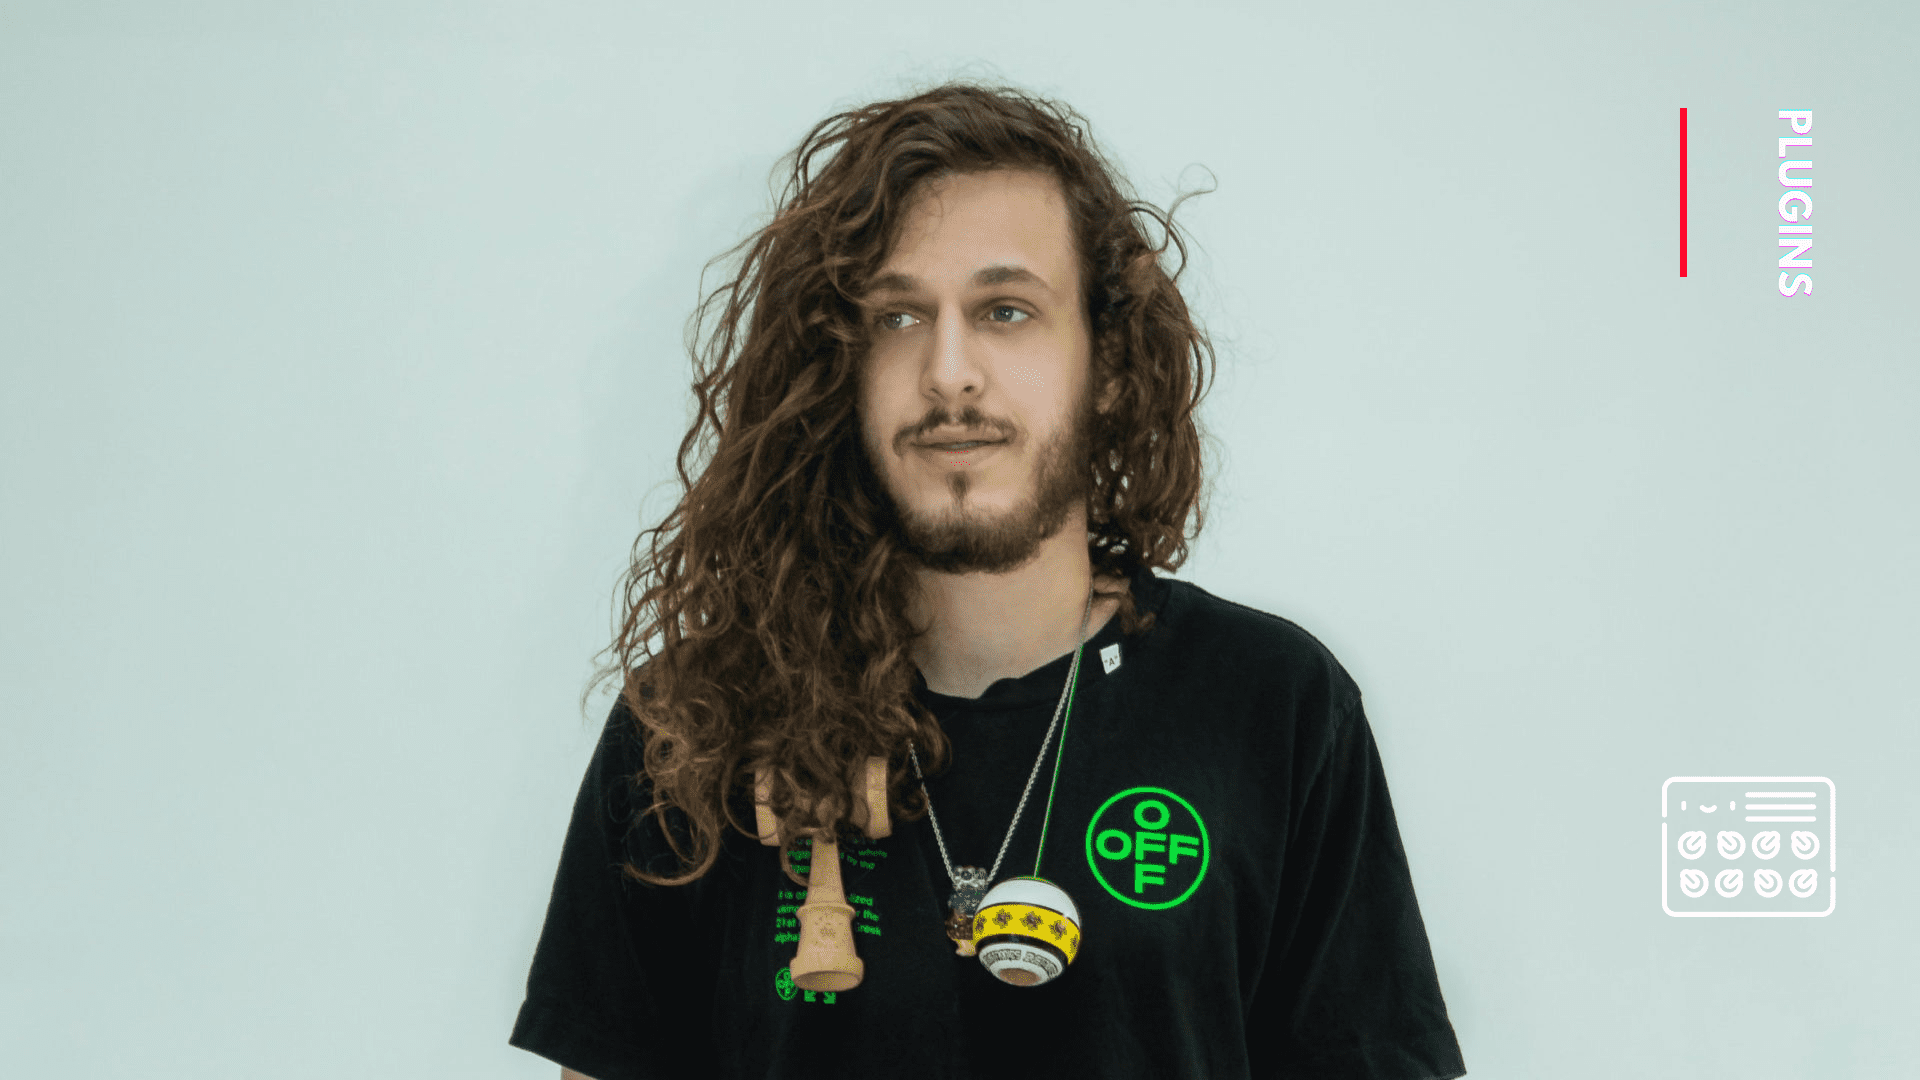 plugins used by subtronics